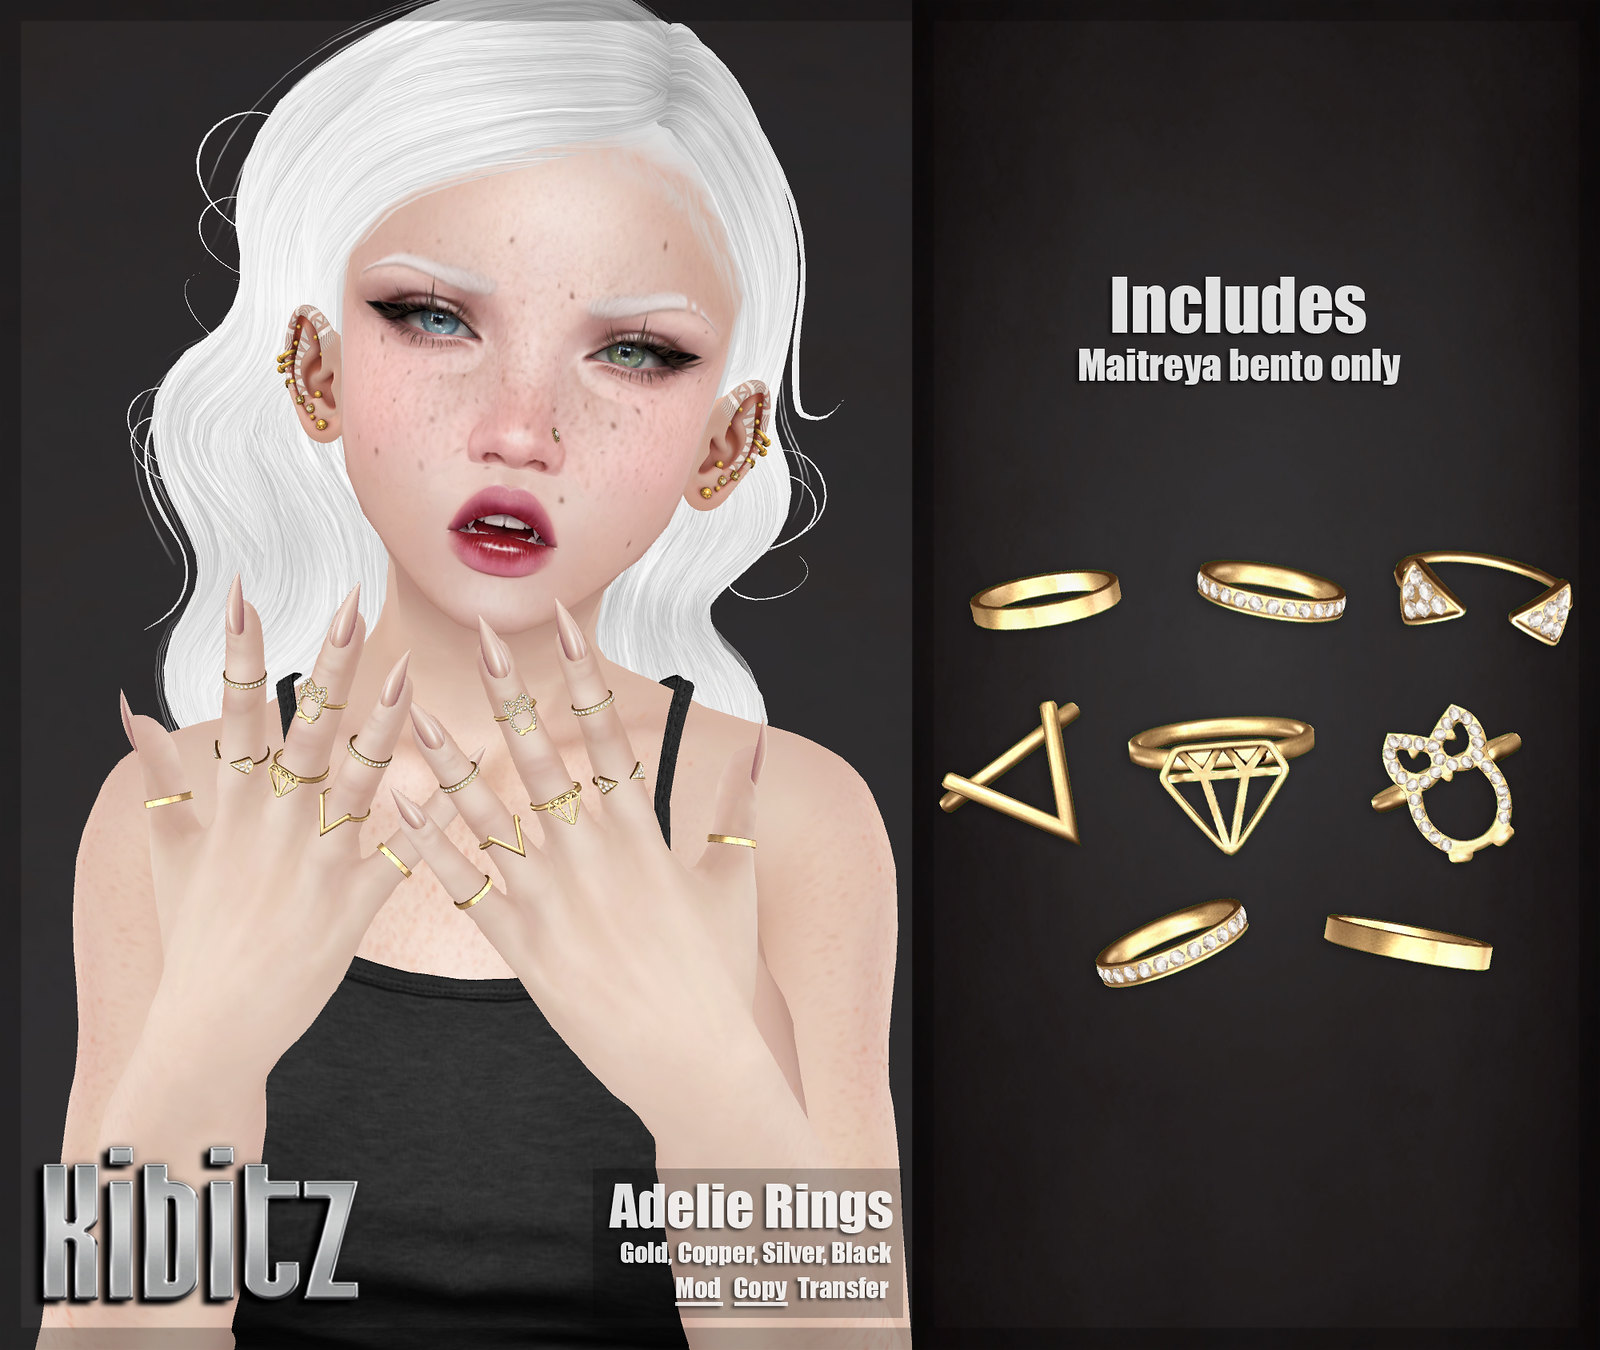 kibitz adelie rings vendor